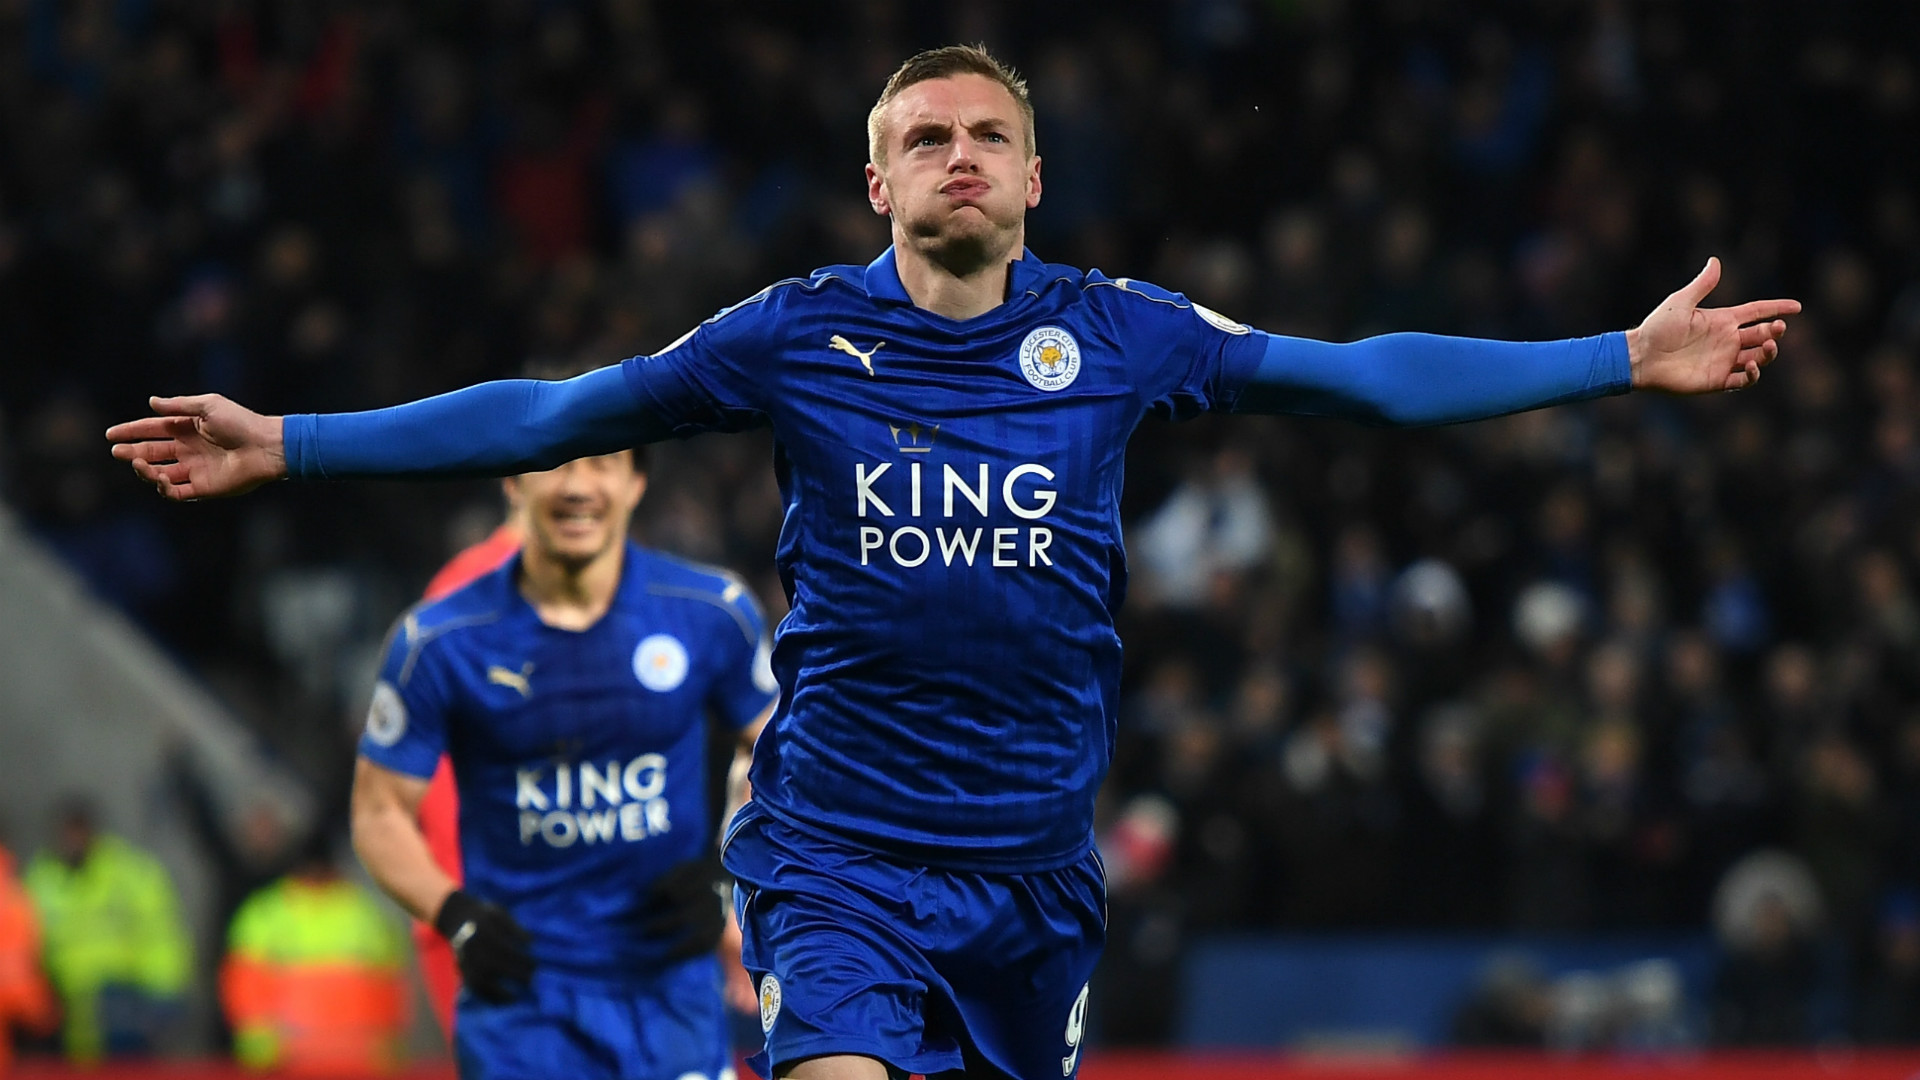 A Team Into leicester striker vardy would get into atletico team, claims